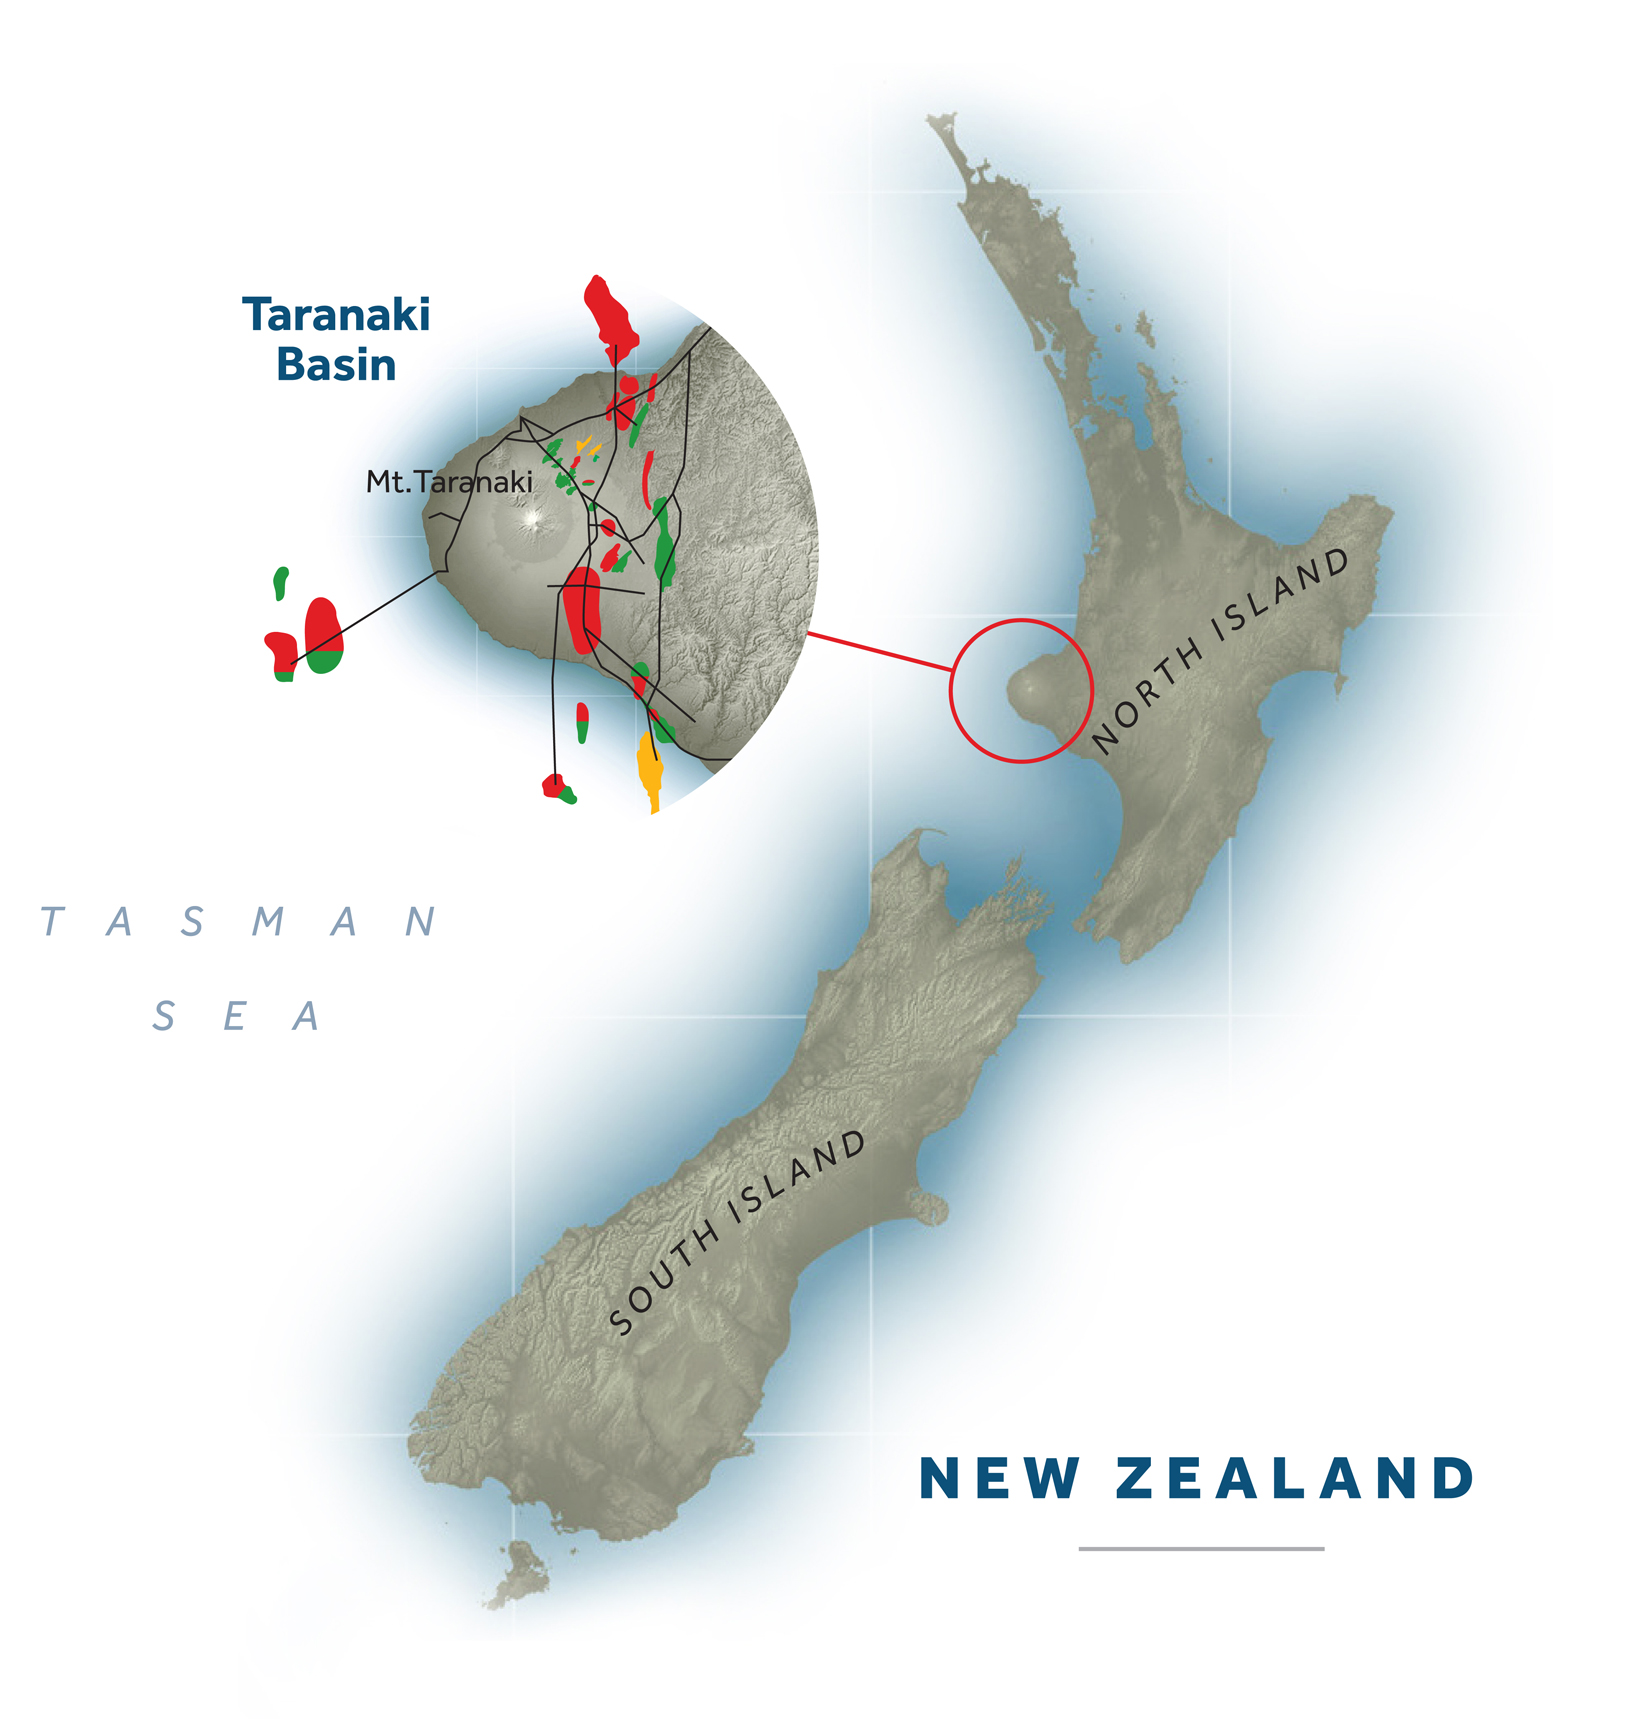 New Zealand - Oil & Gas Producer And Explorer